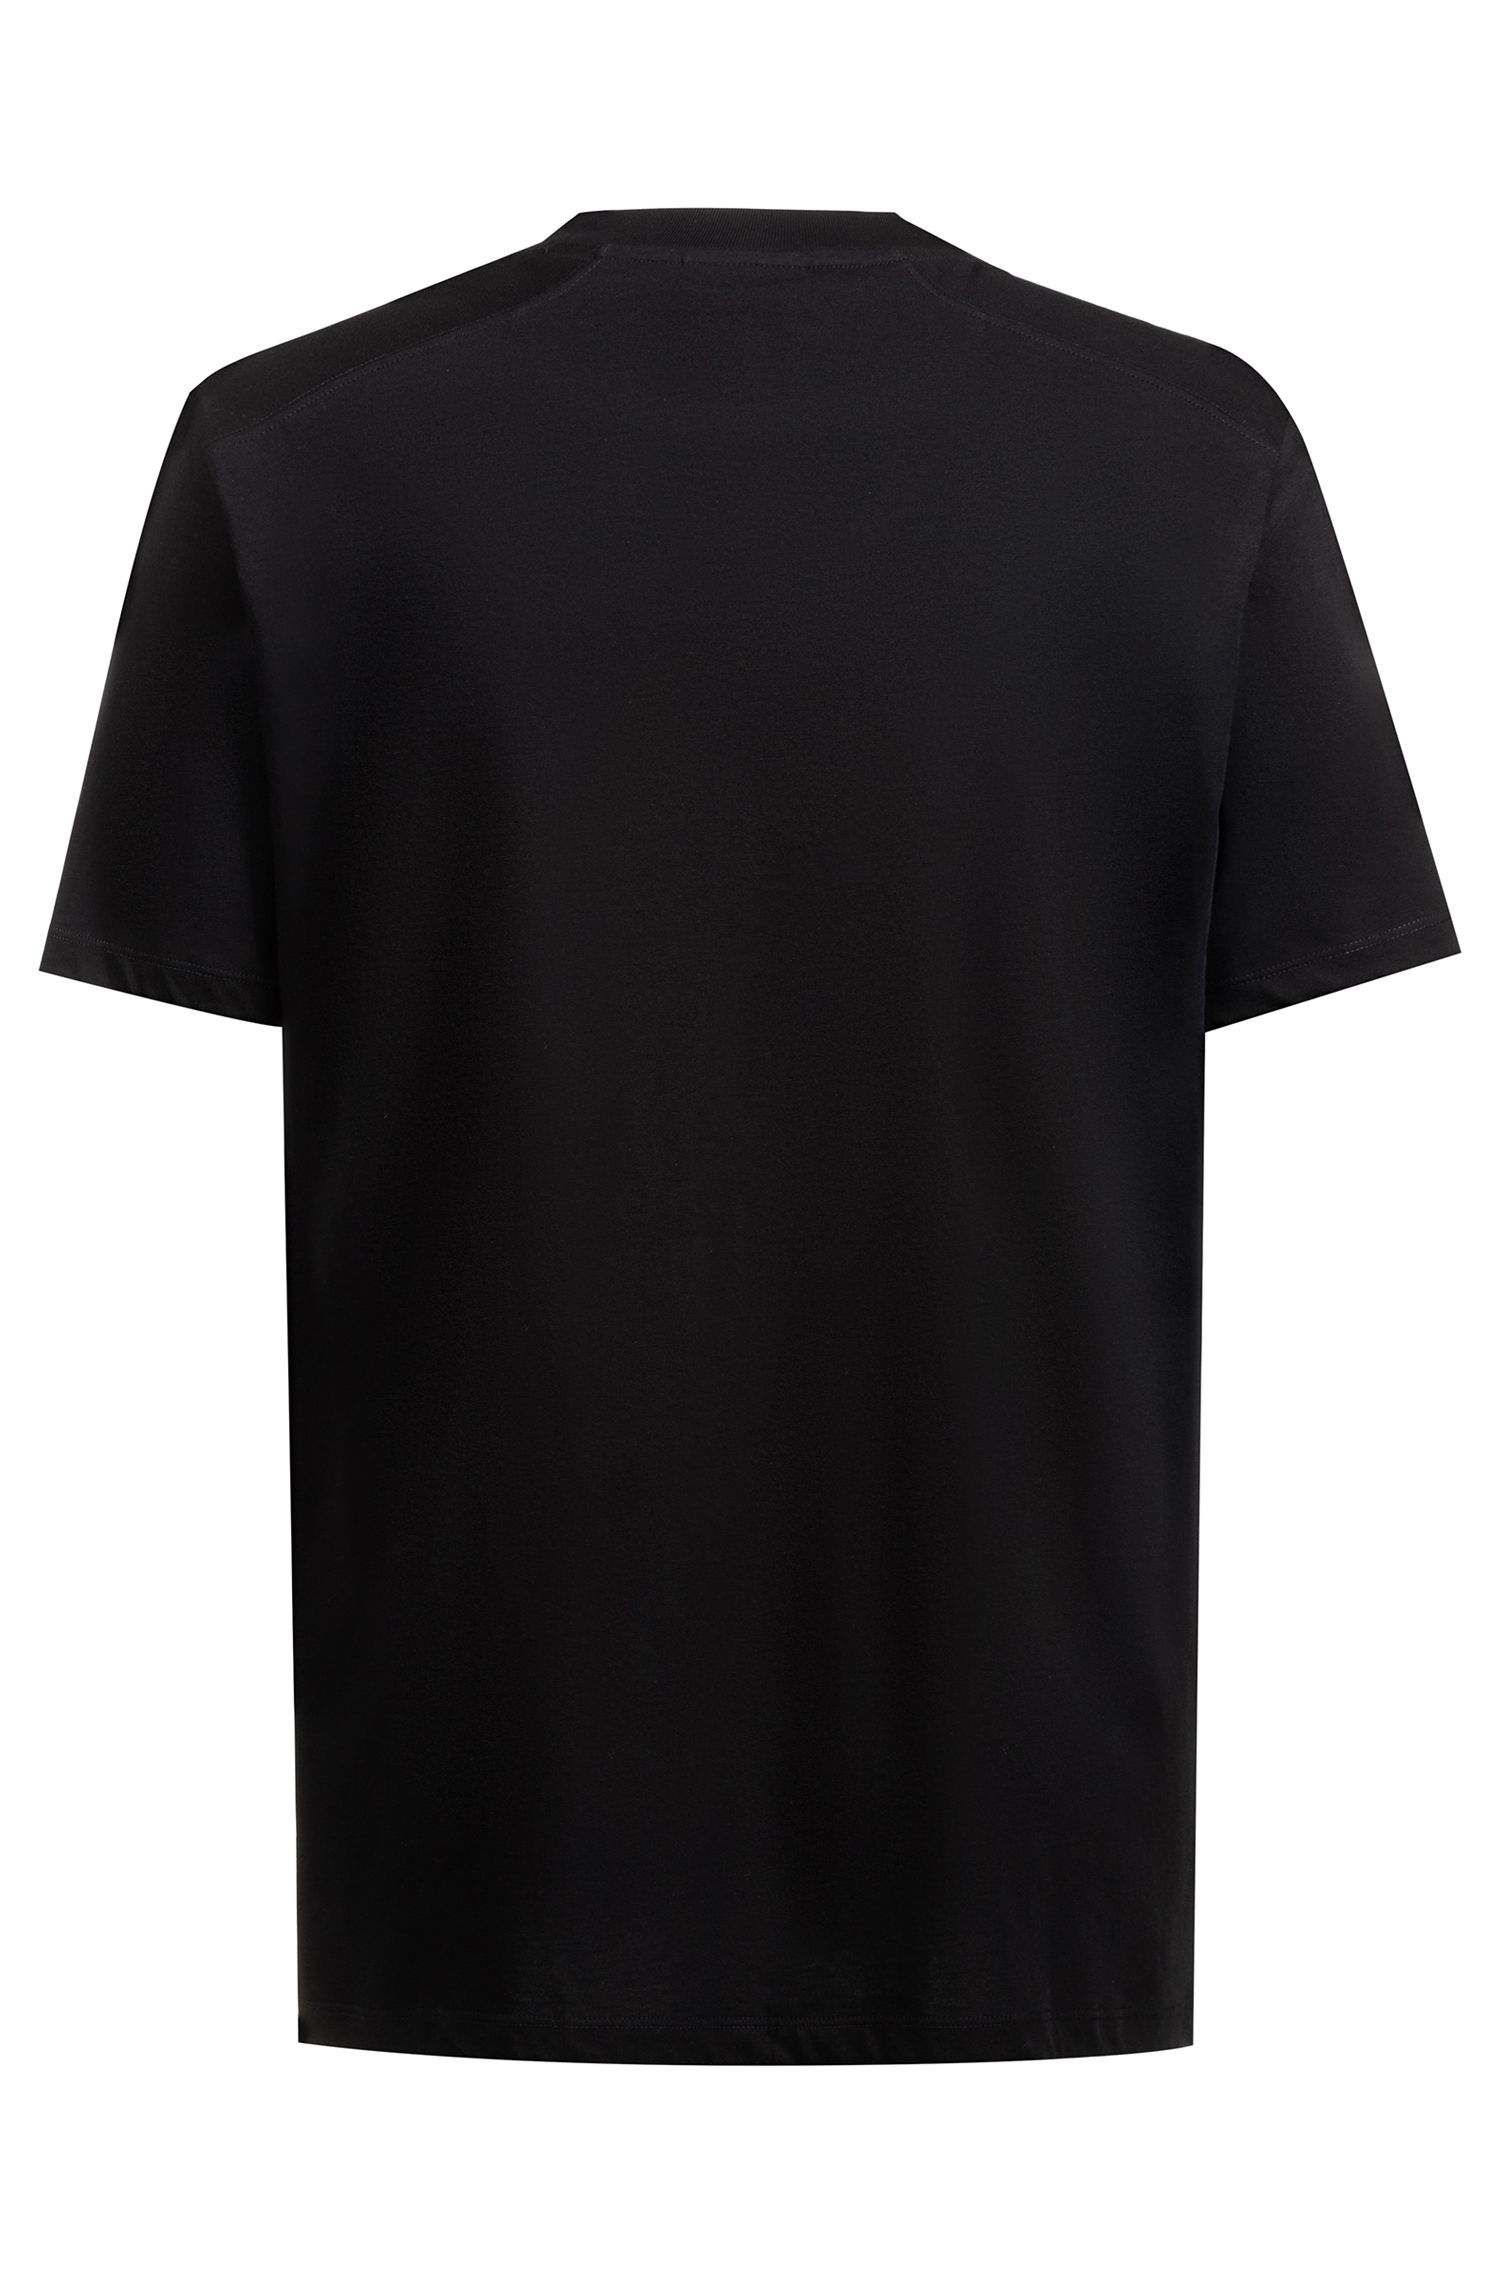 Relaxed-fit T-shirt in cotton with retro-graphic print, Black